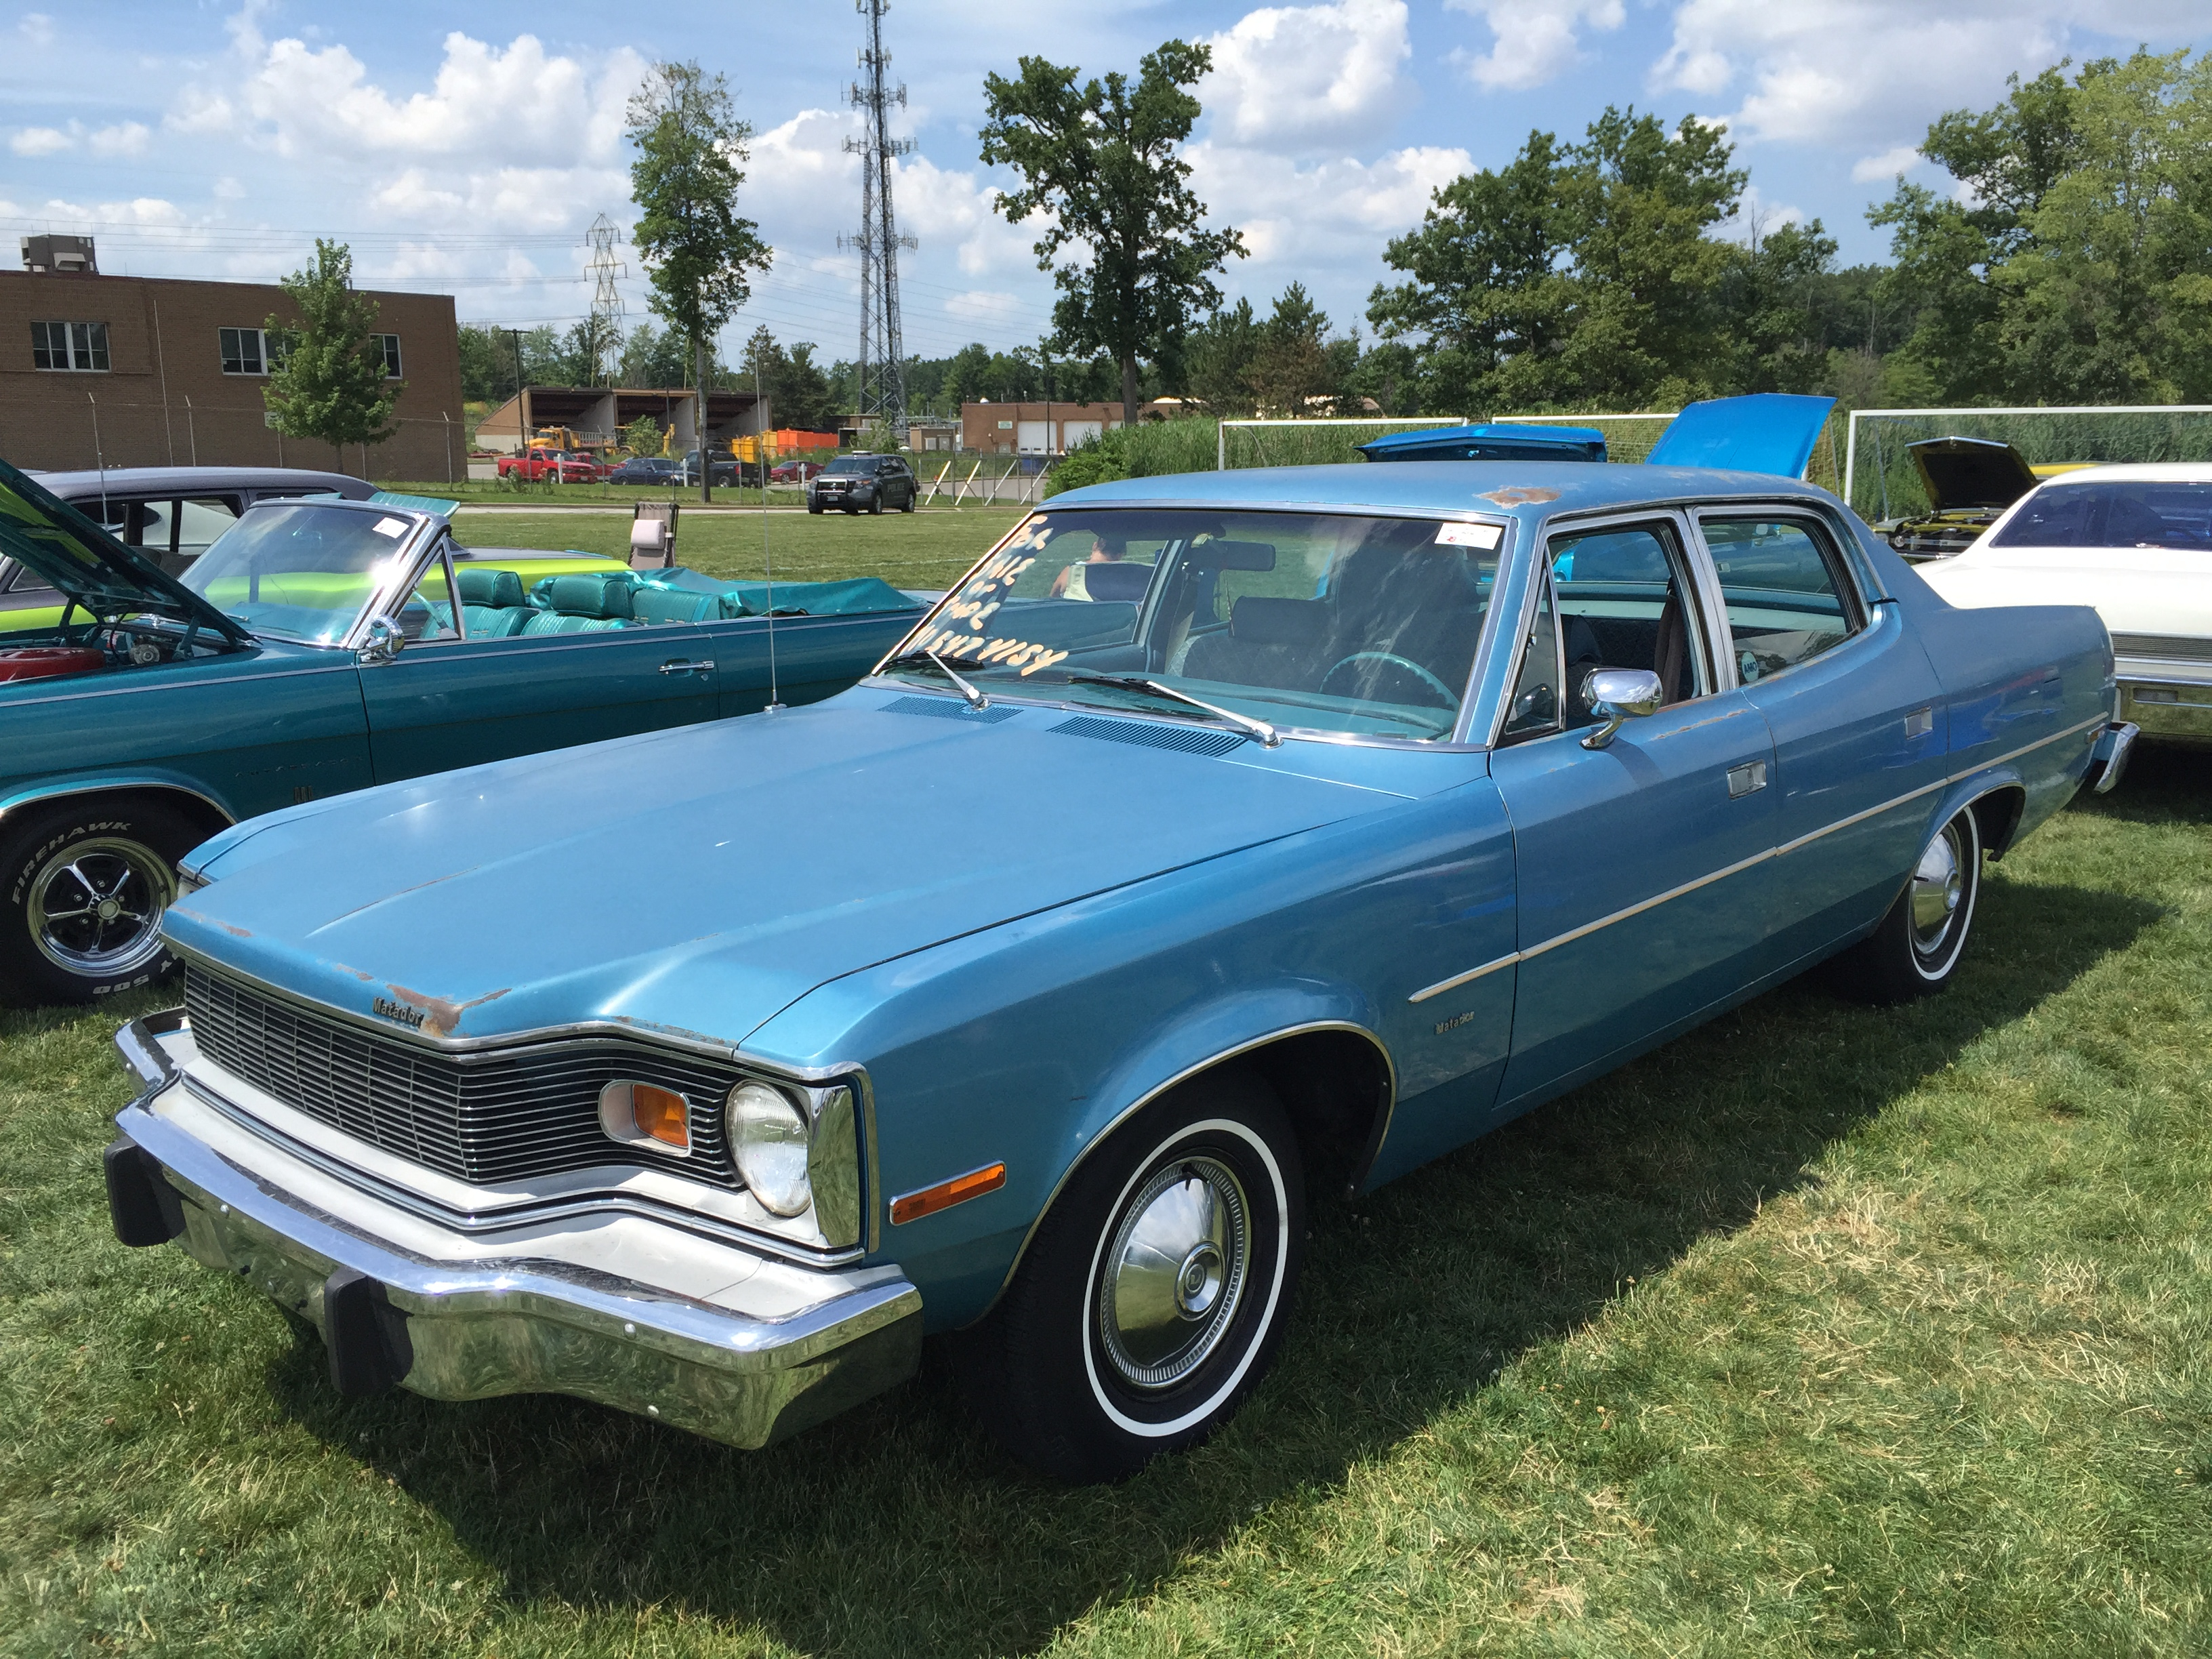 1975_AMC_Matador_sedan_blue_base_model_a